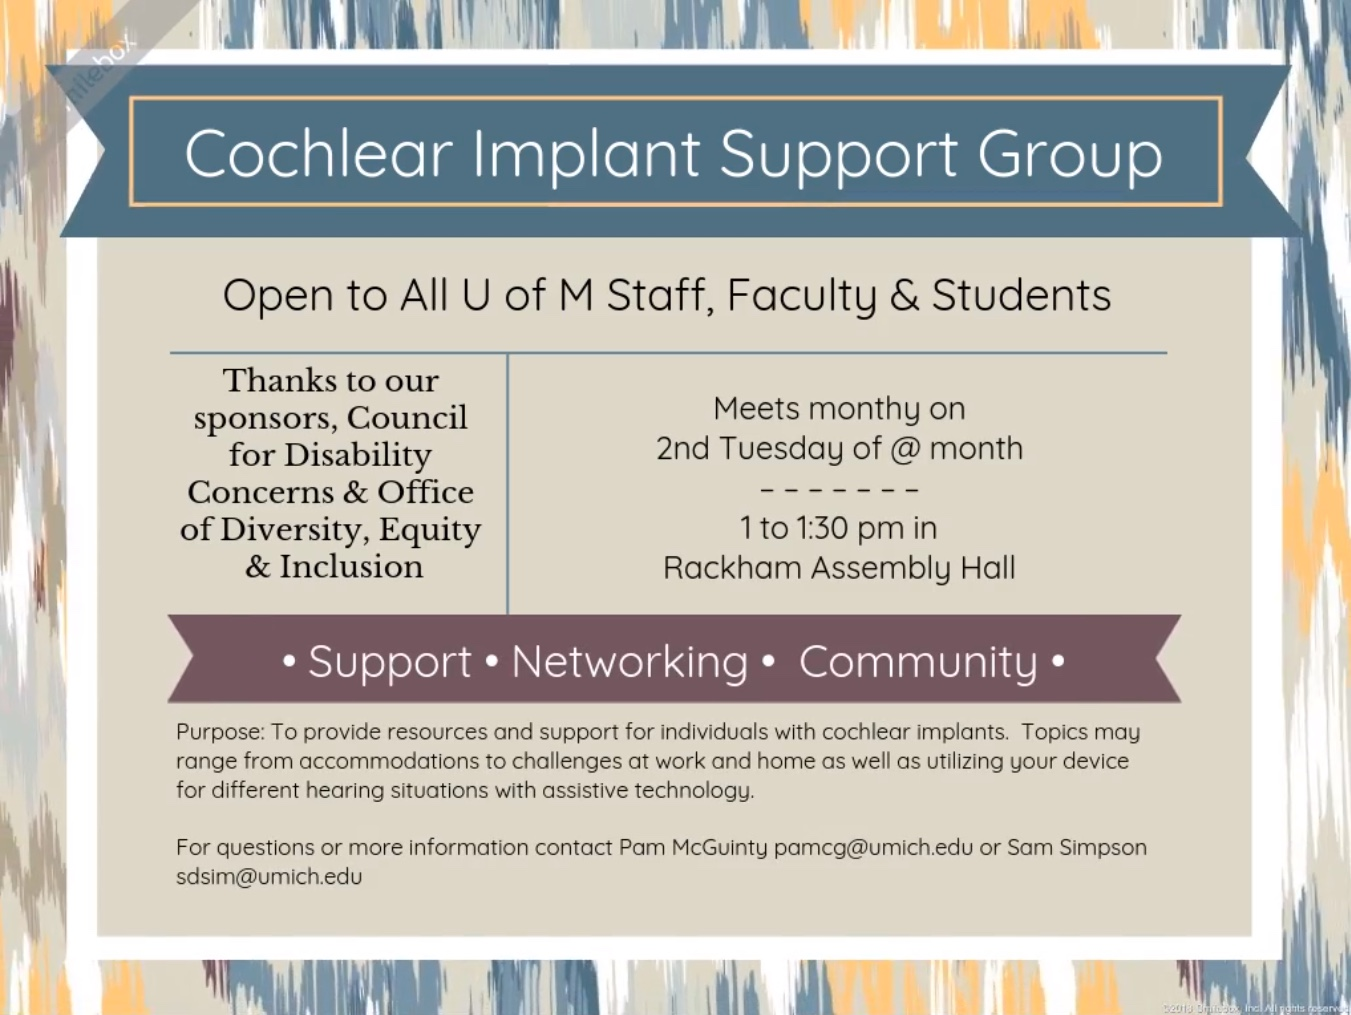 cochlear implant support group flyer